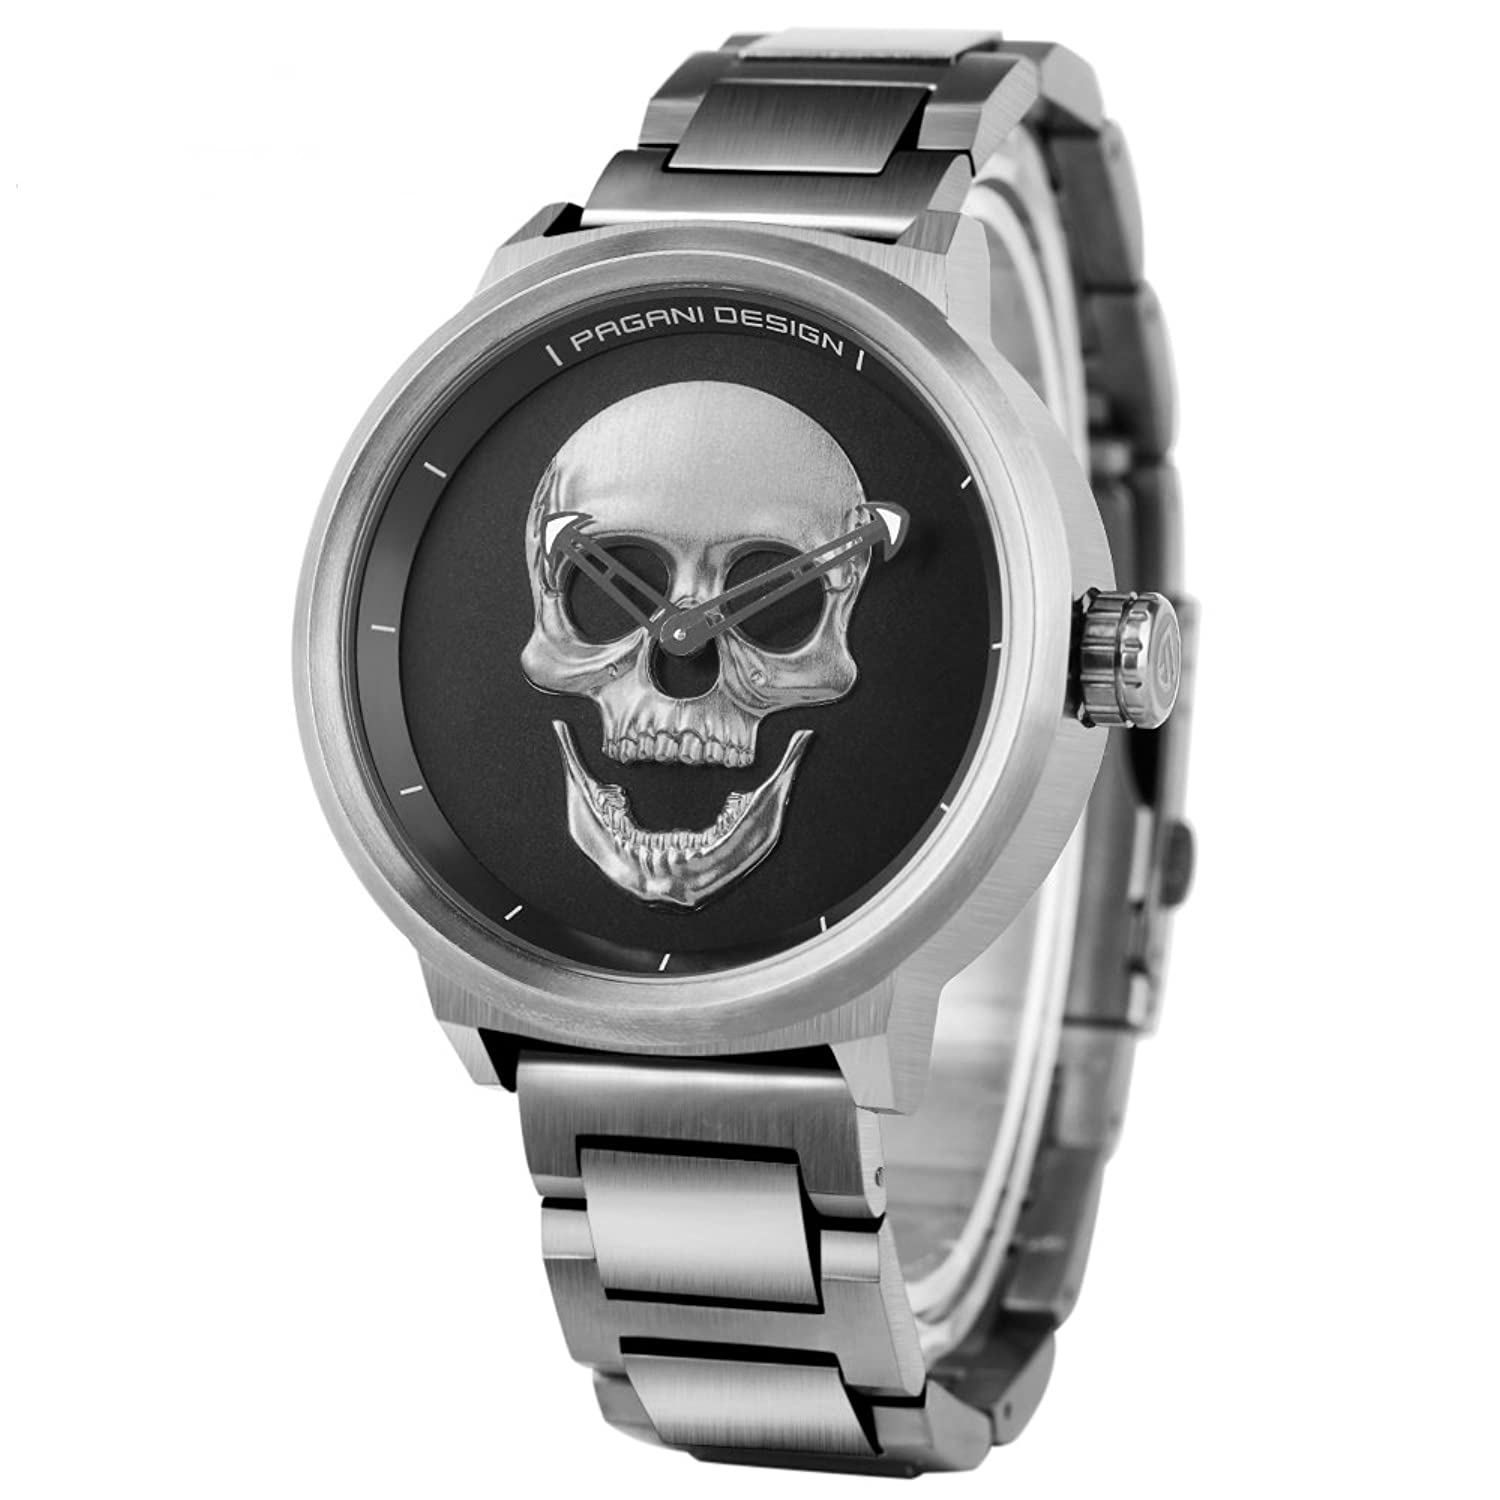 Amazon.com: PAGANI DESIGN Mens 30M Water Resistant Watch 3D Skull Dial Design Stainless Steel Quartz Wristwatch: Watches